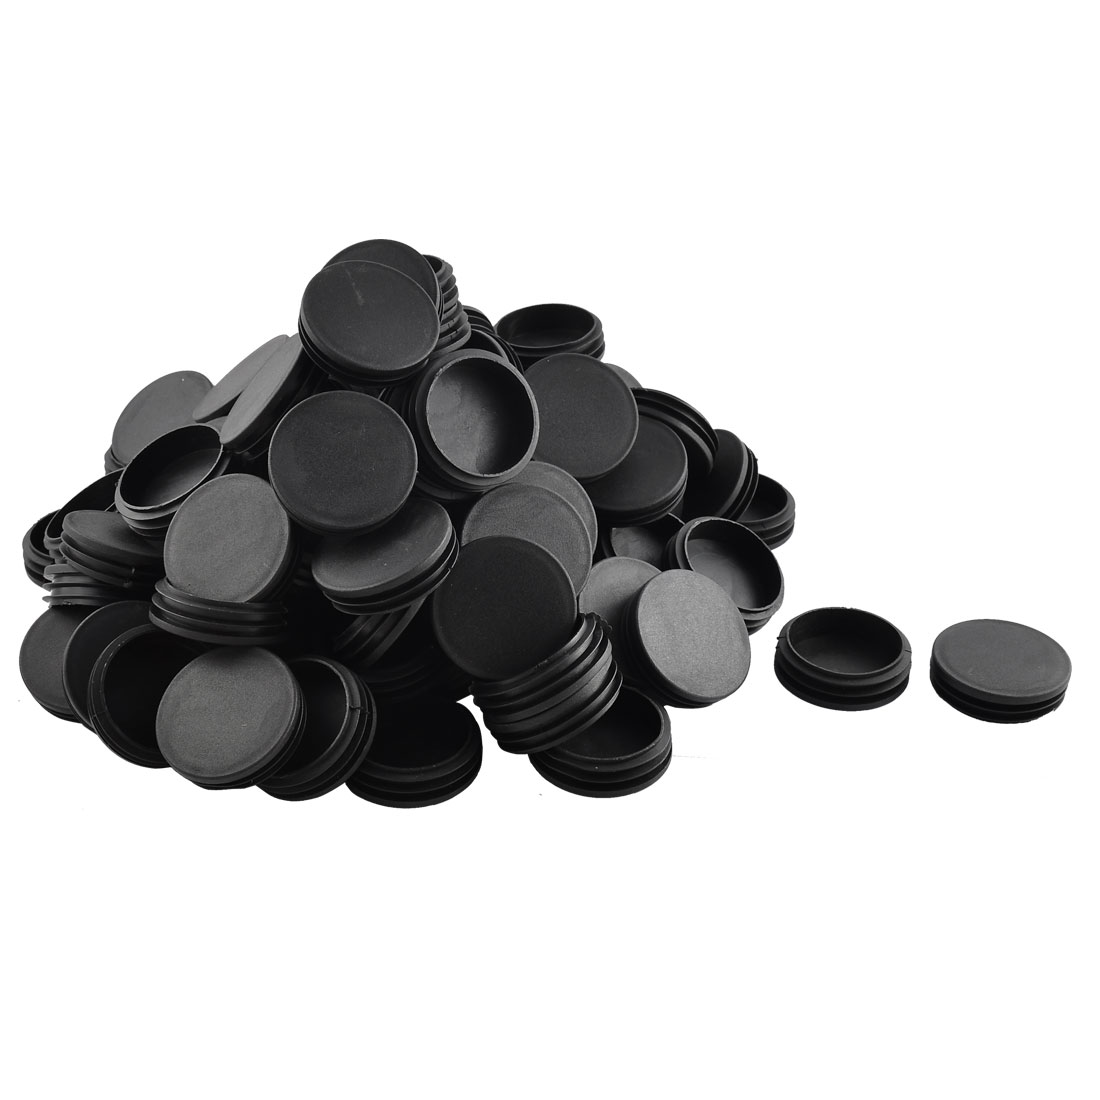 Plastic Round Shaped Table Chair Leg Feet Tube Insert Black 100 Pcs 6cm Diameter